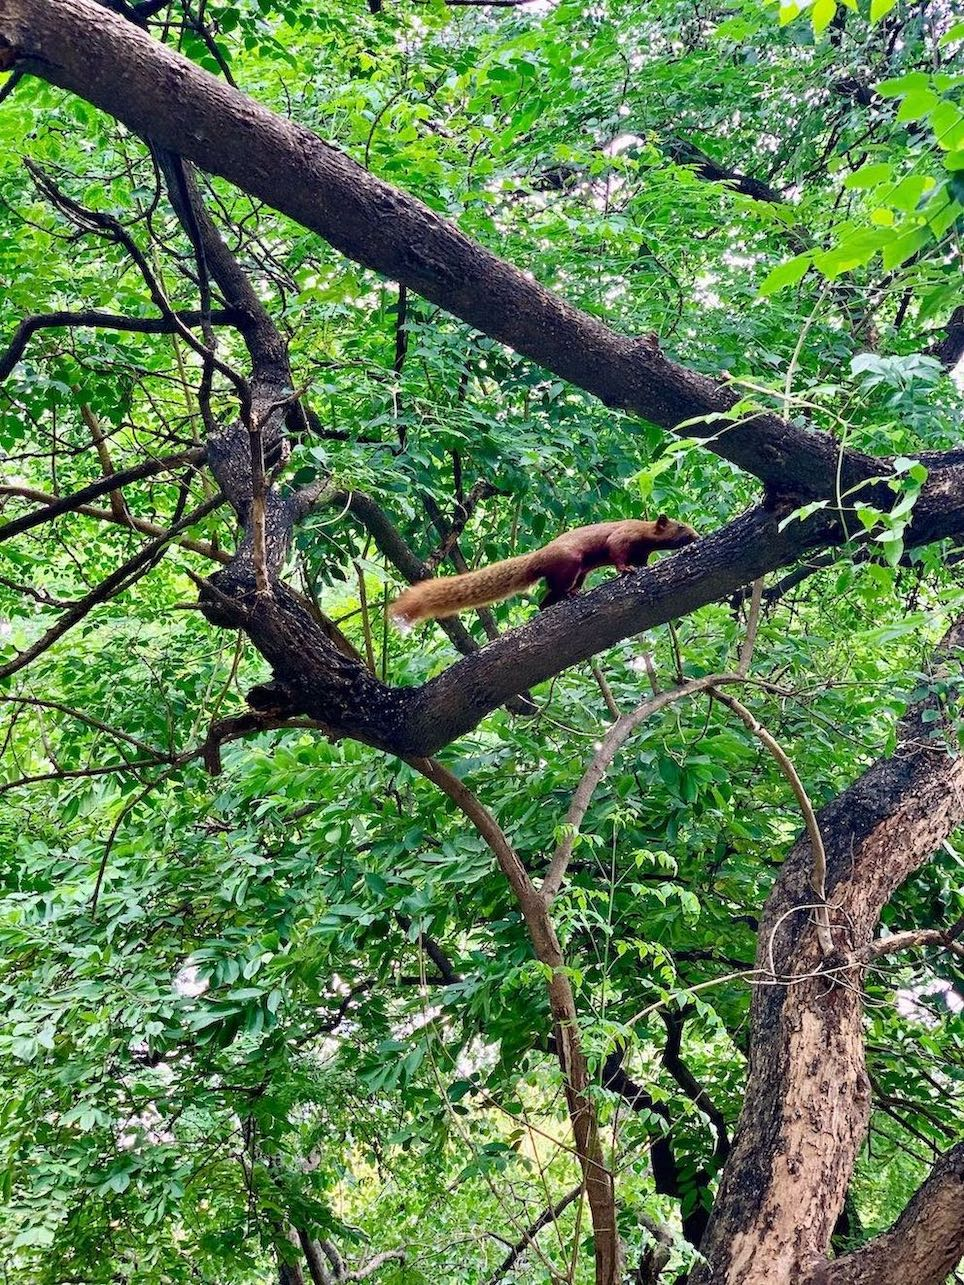 A red squirrel at Wat Phnom Temple